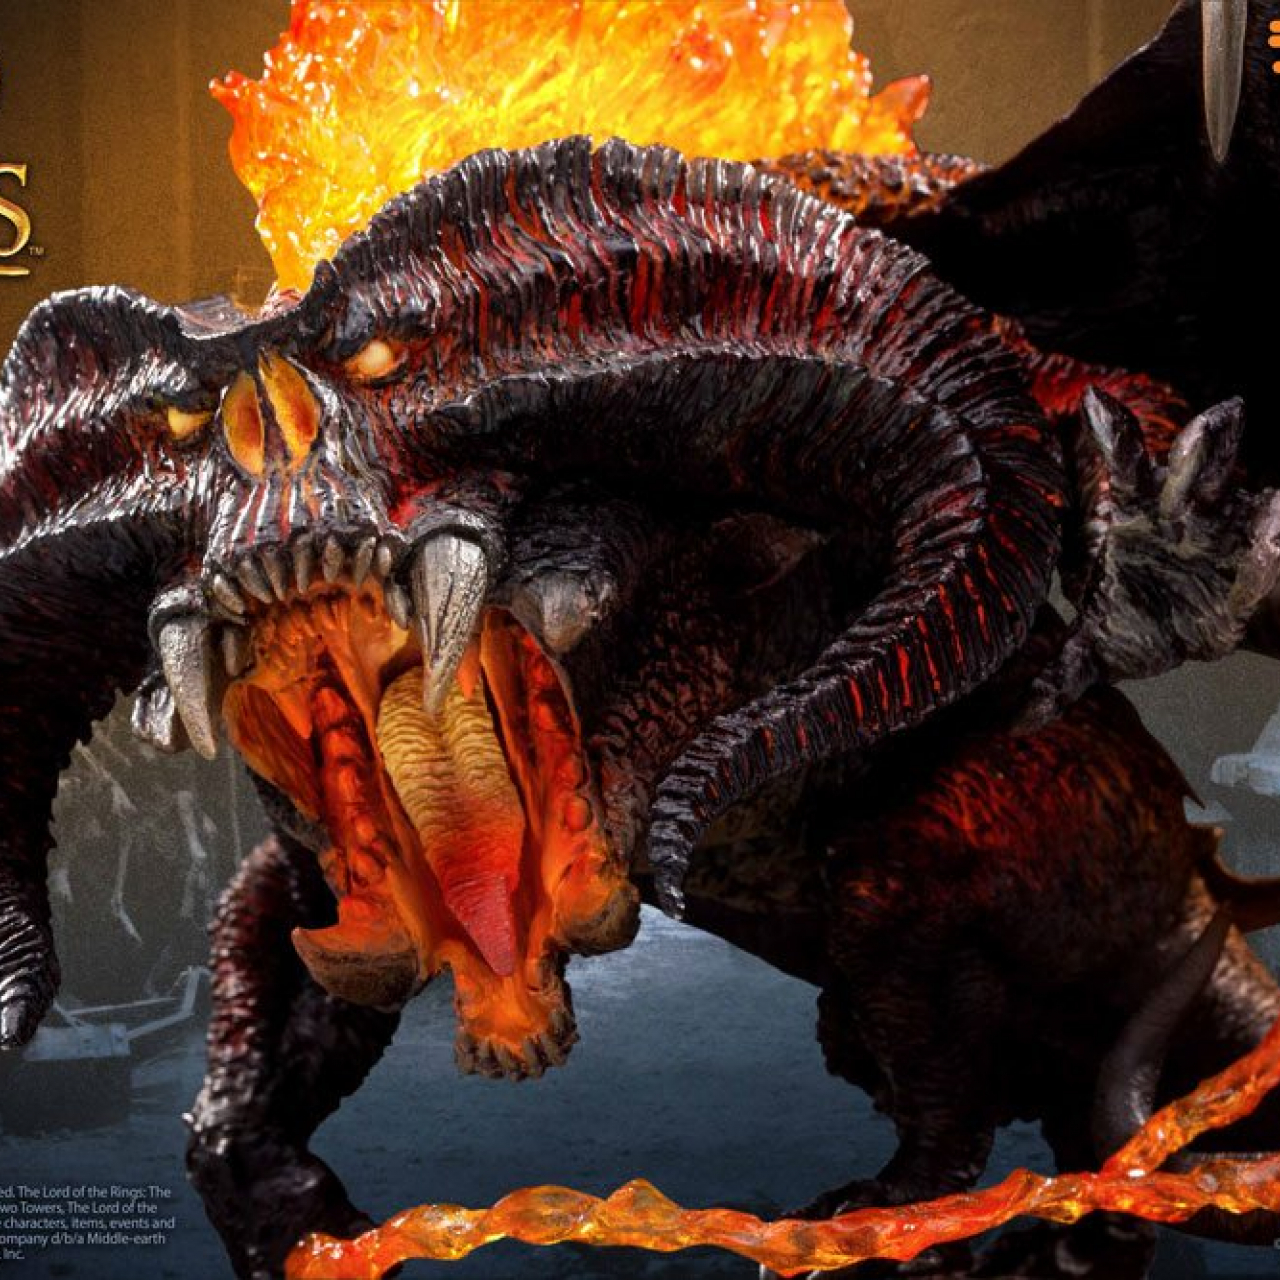 Lord of the Rings Defo-Real Series Soft Vinyl Figure Balrog 16 cm